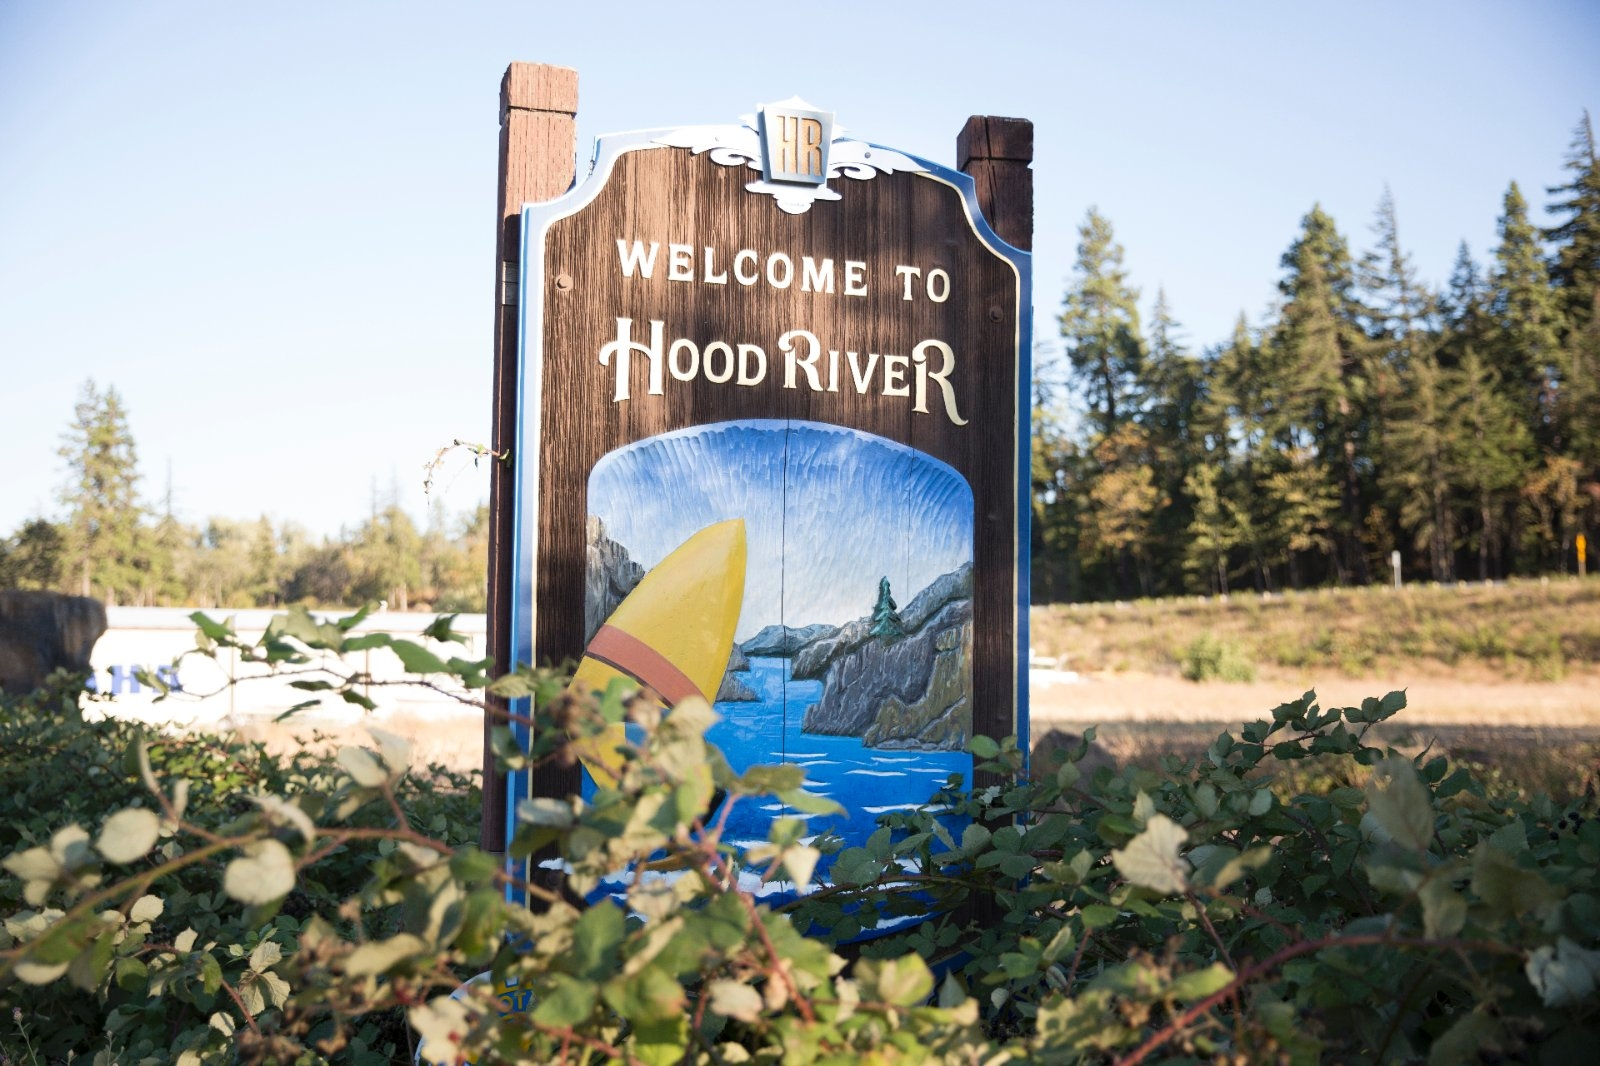 Hood River welcome sign.